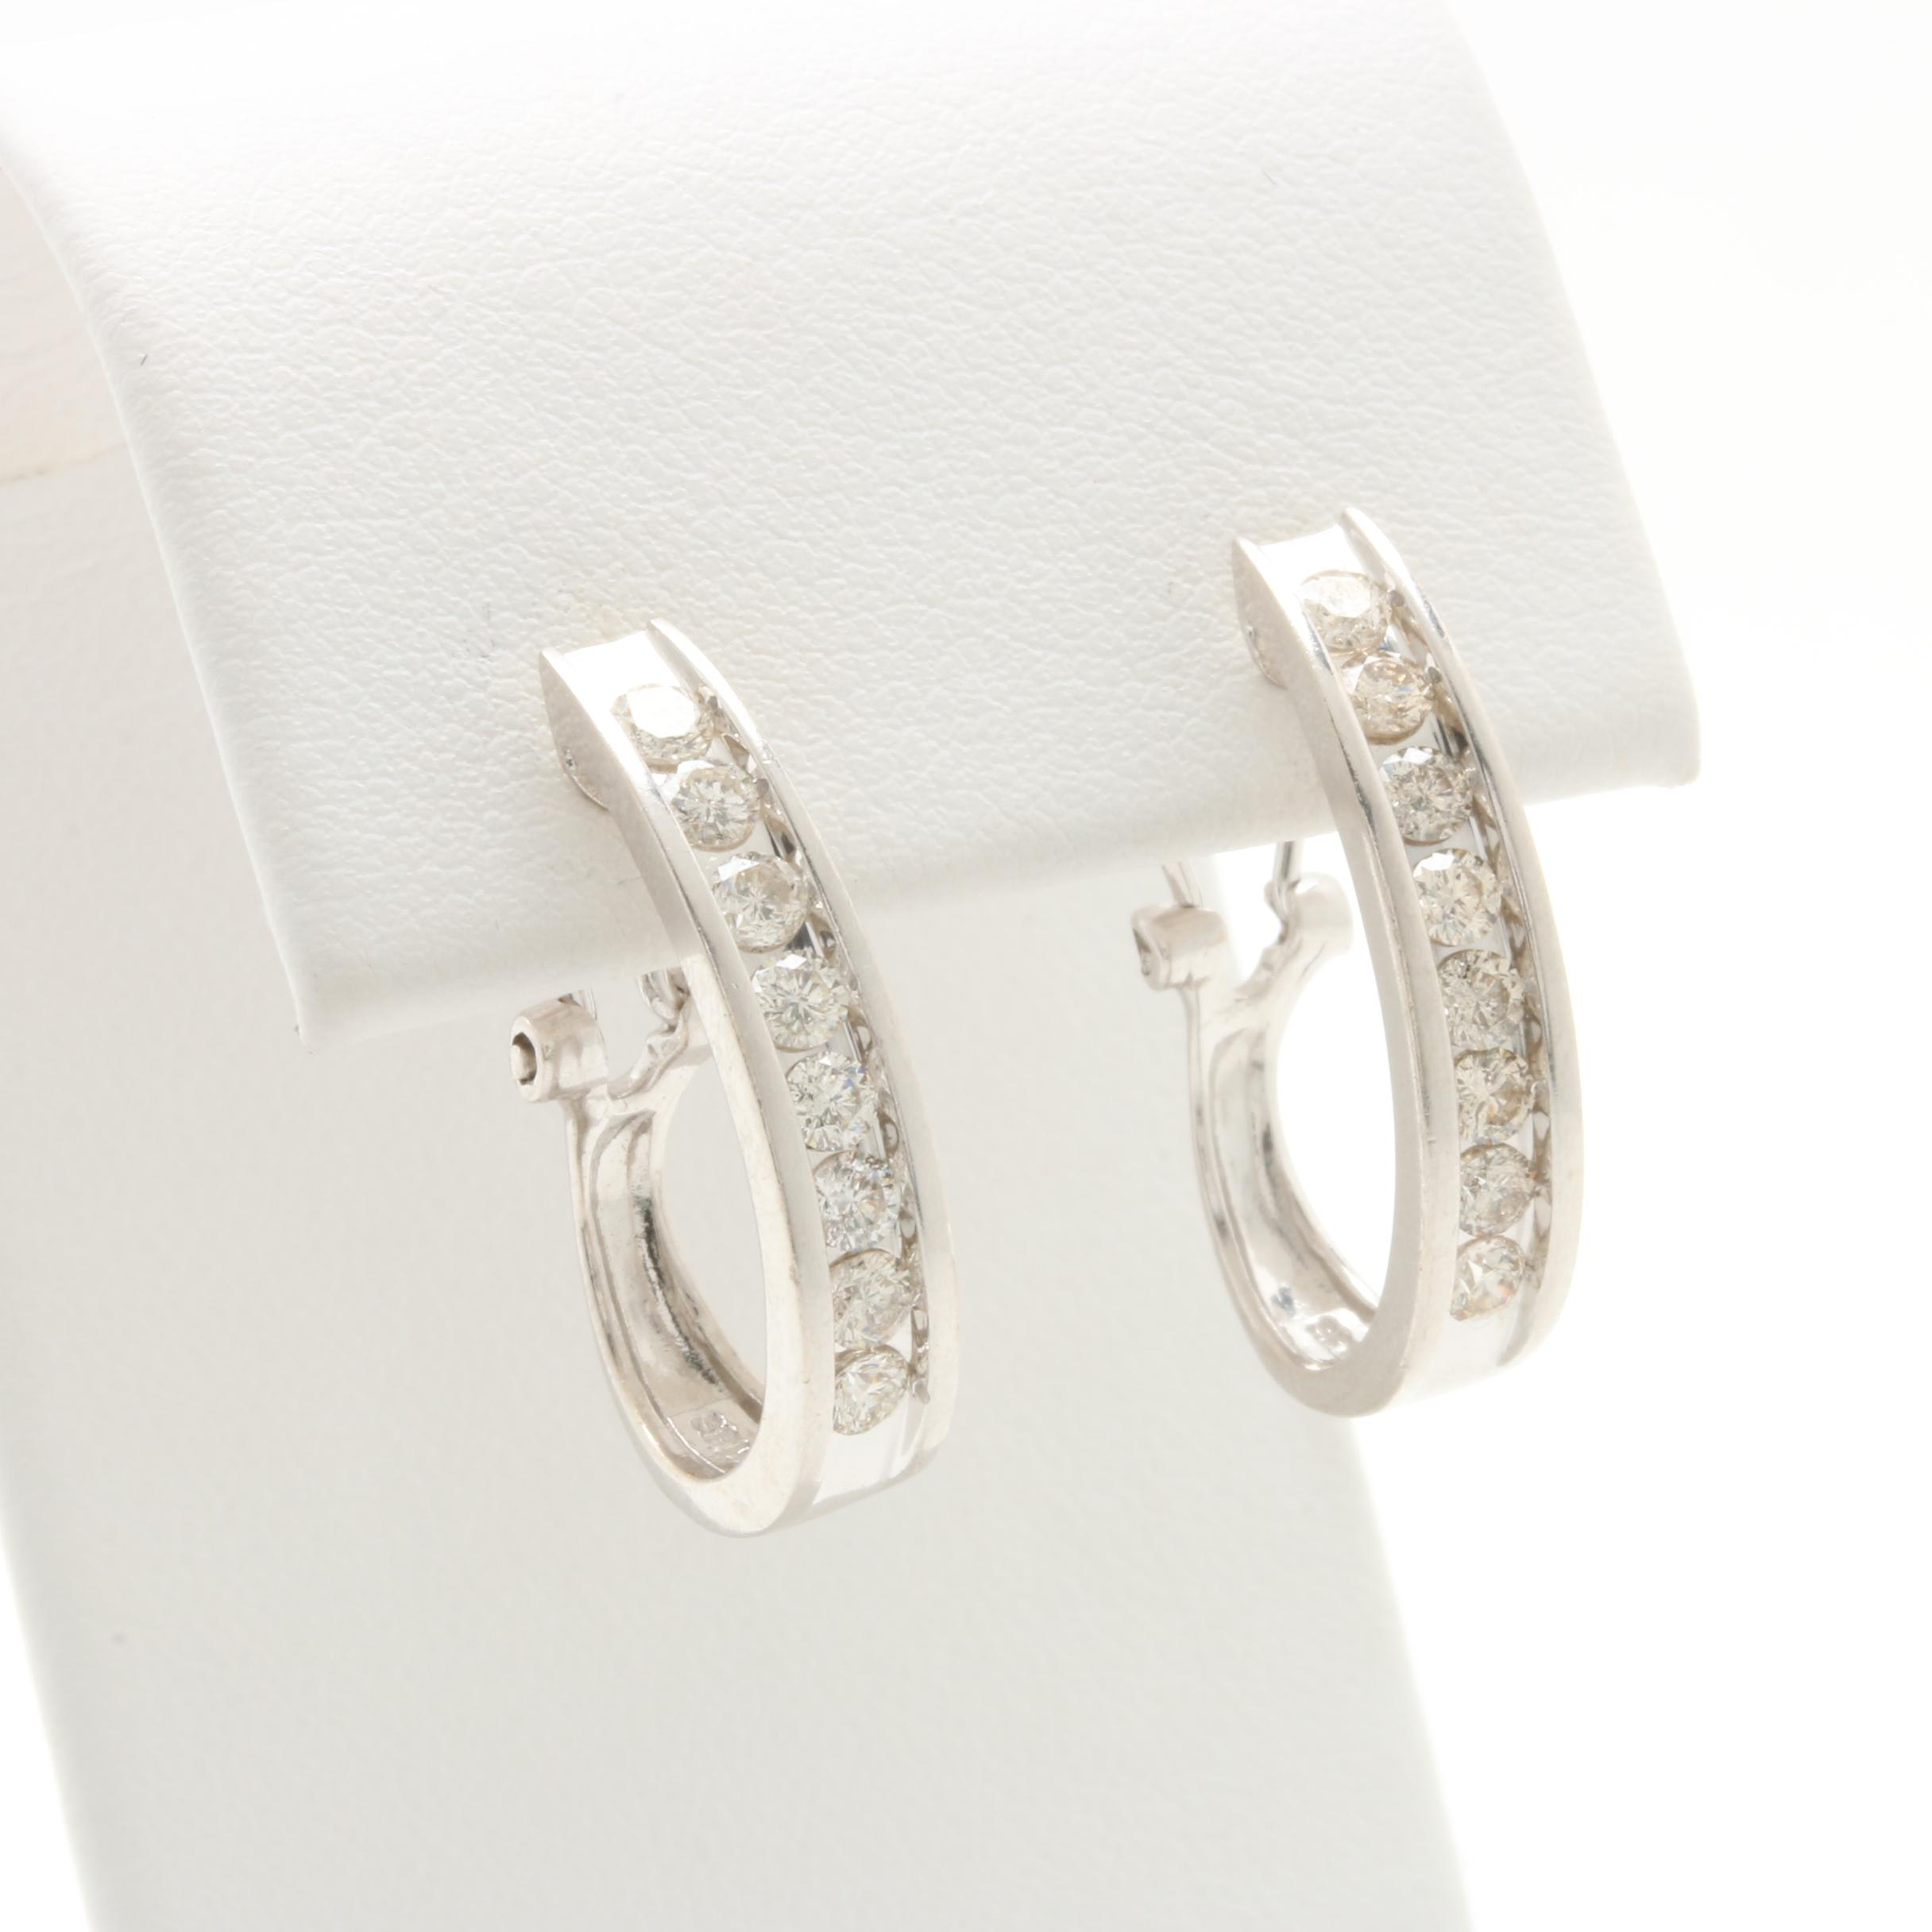 14K White Gold Diamond Elongated Hoop Earrings